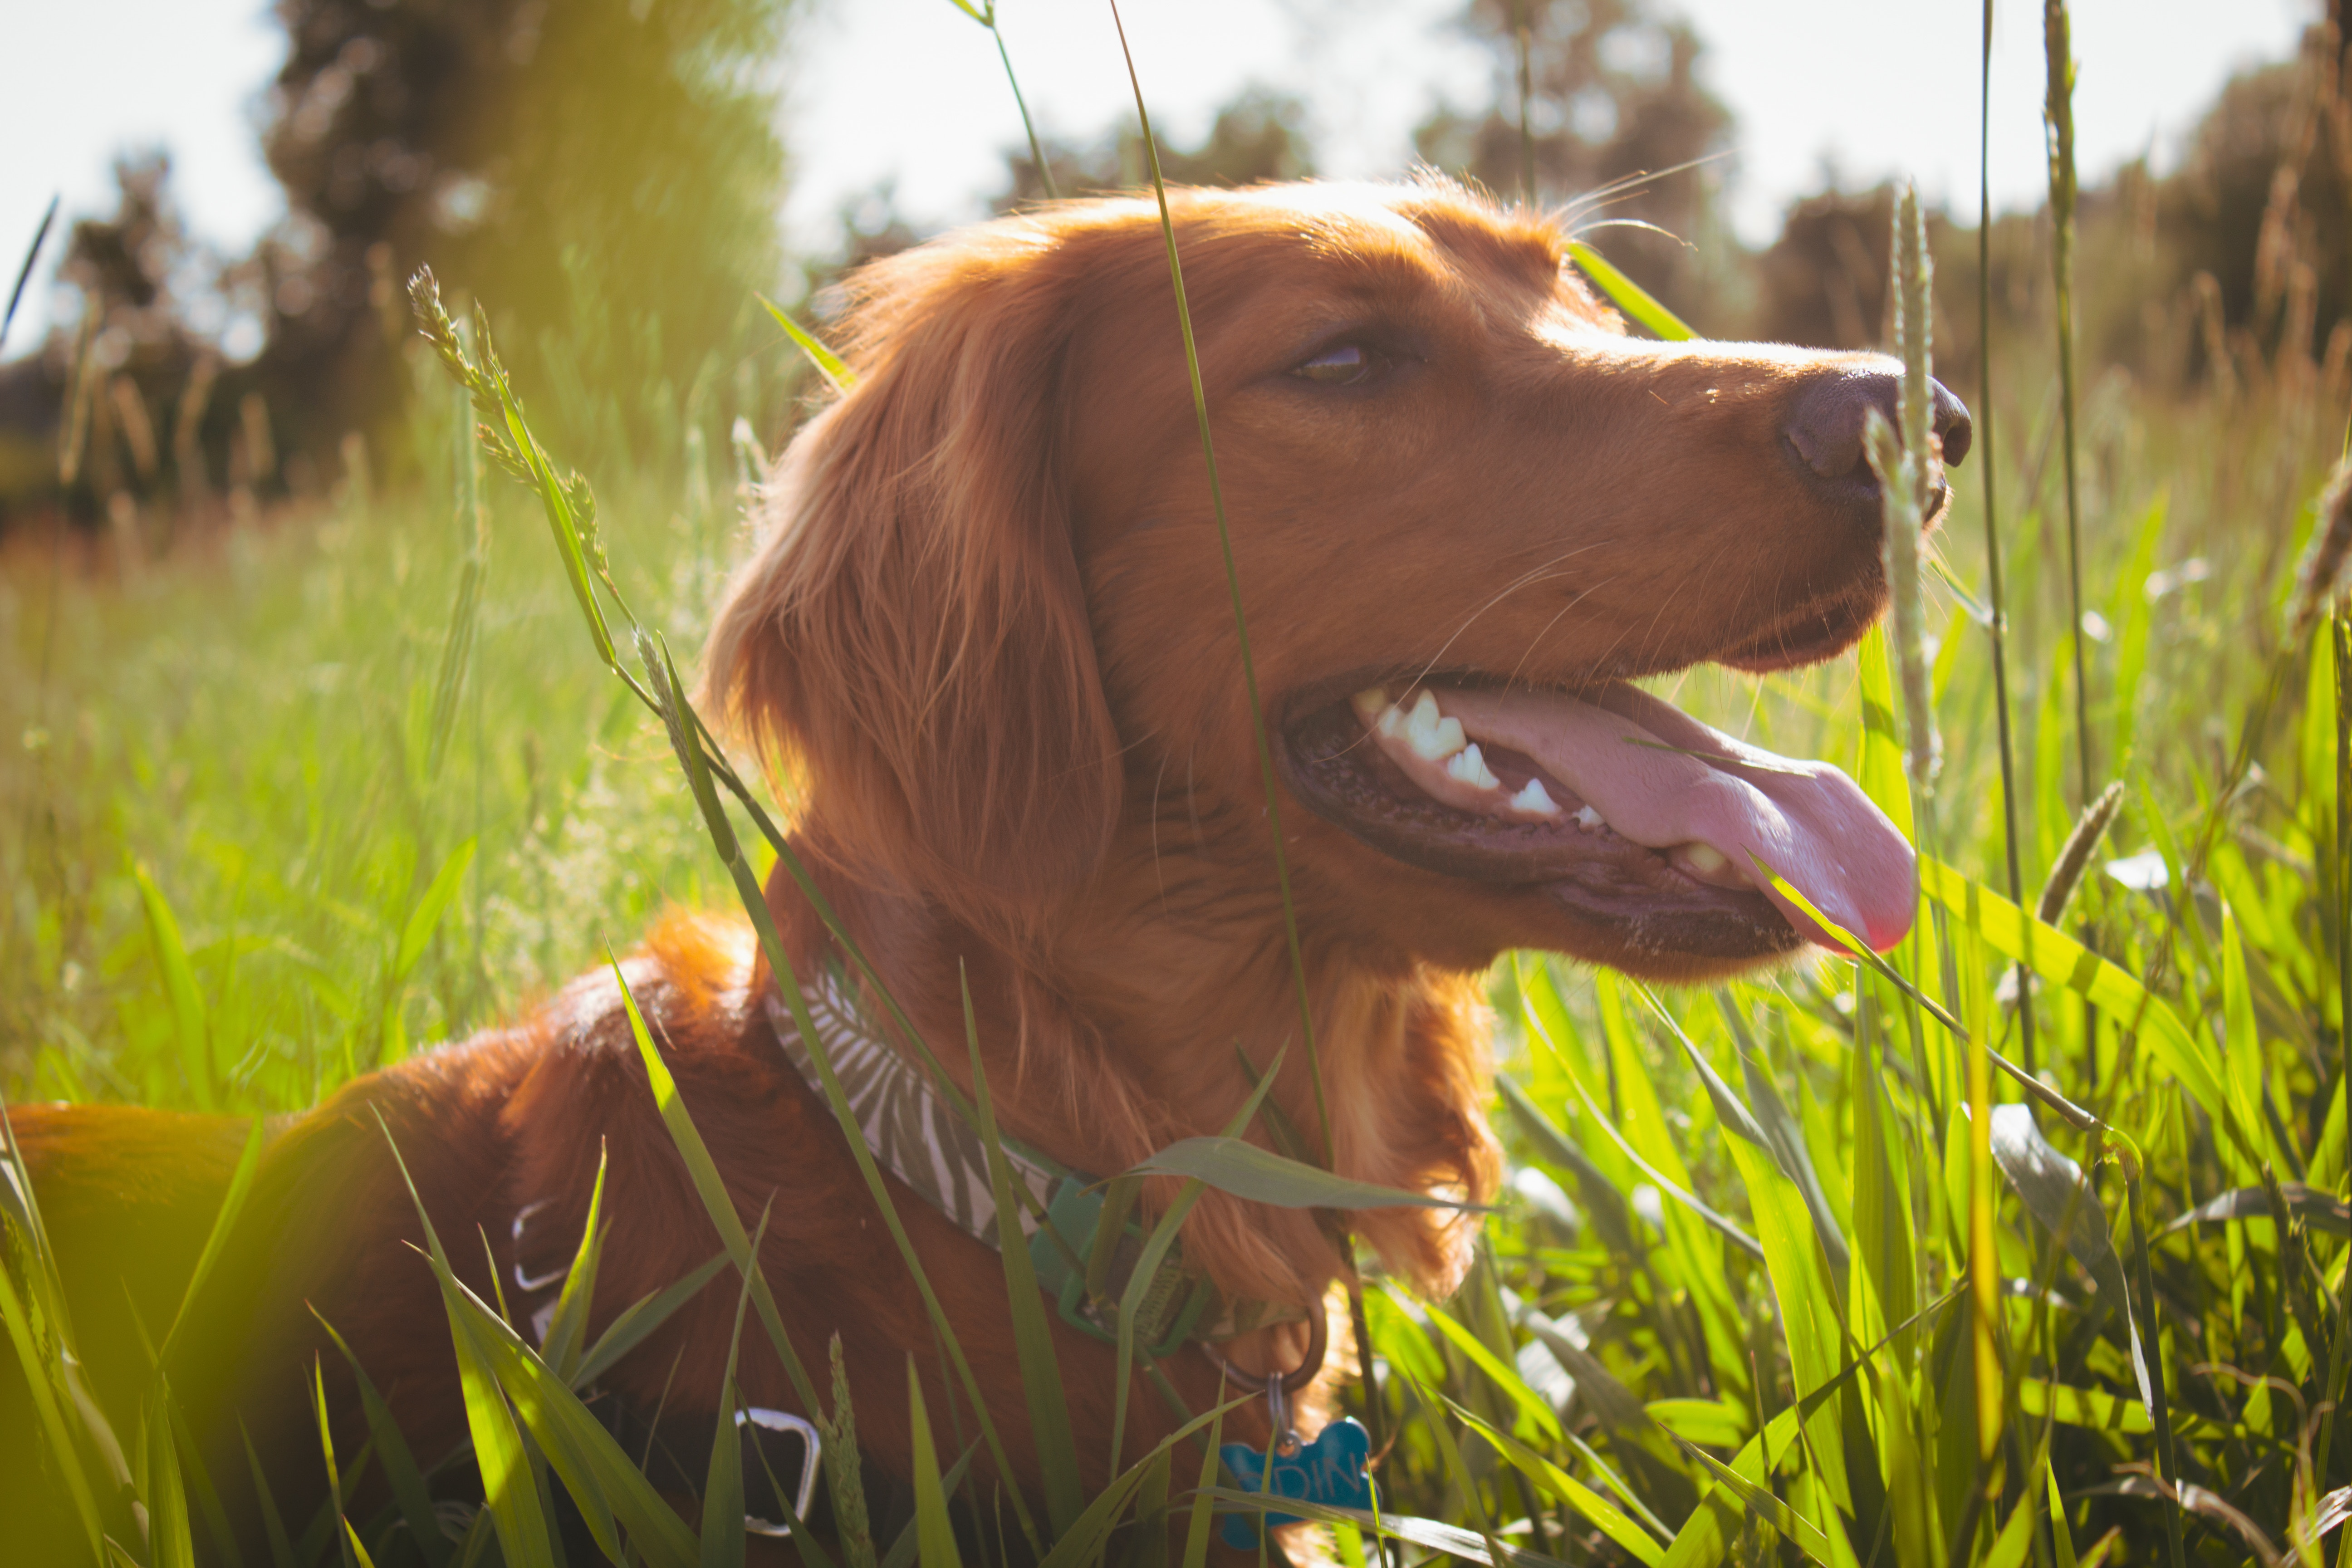 Pet friendly hiking trails in the city